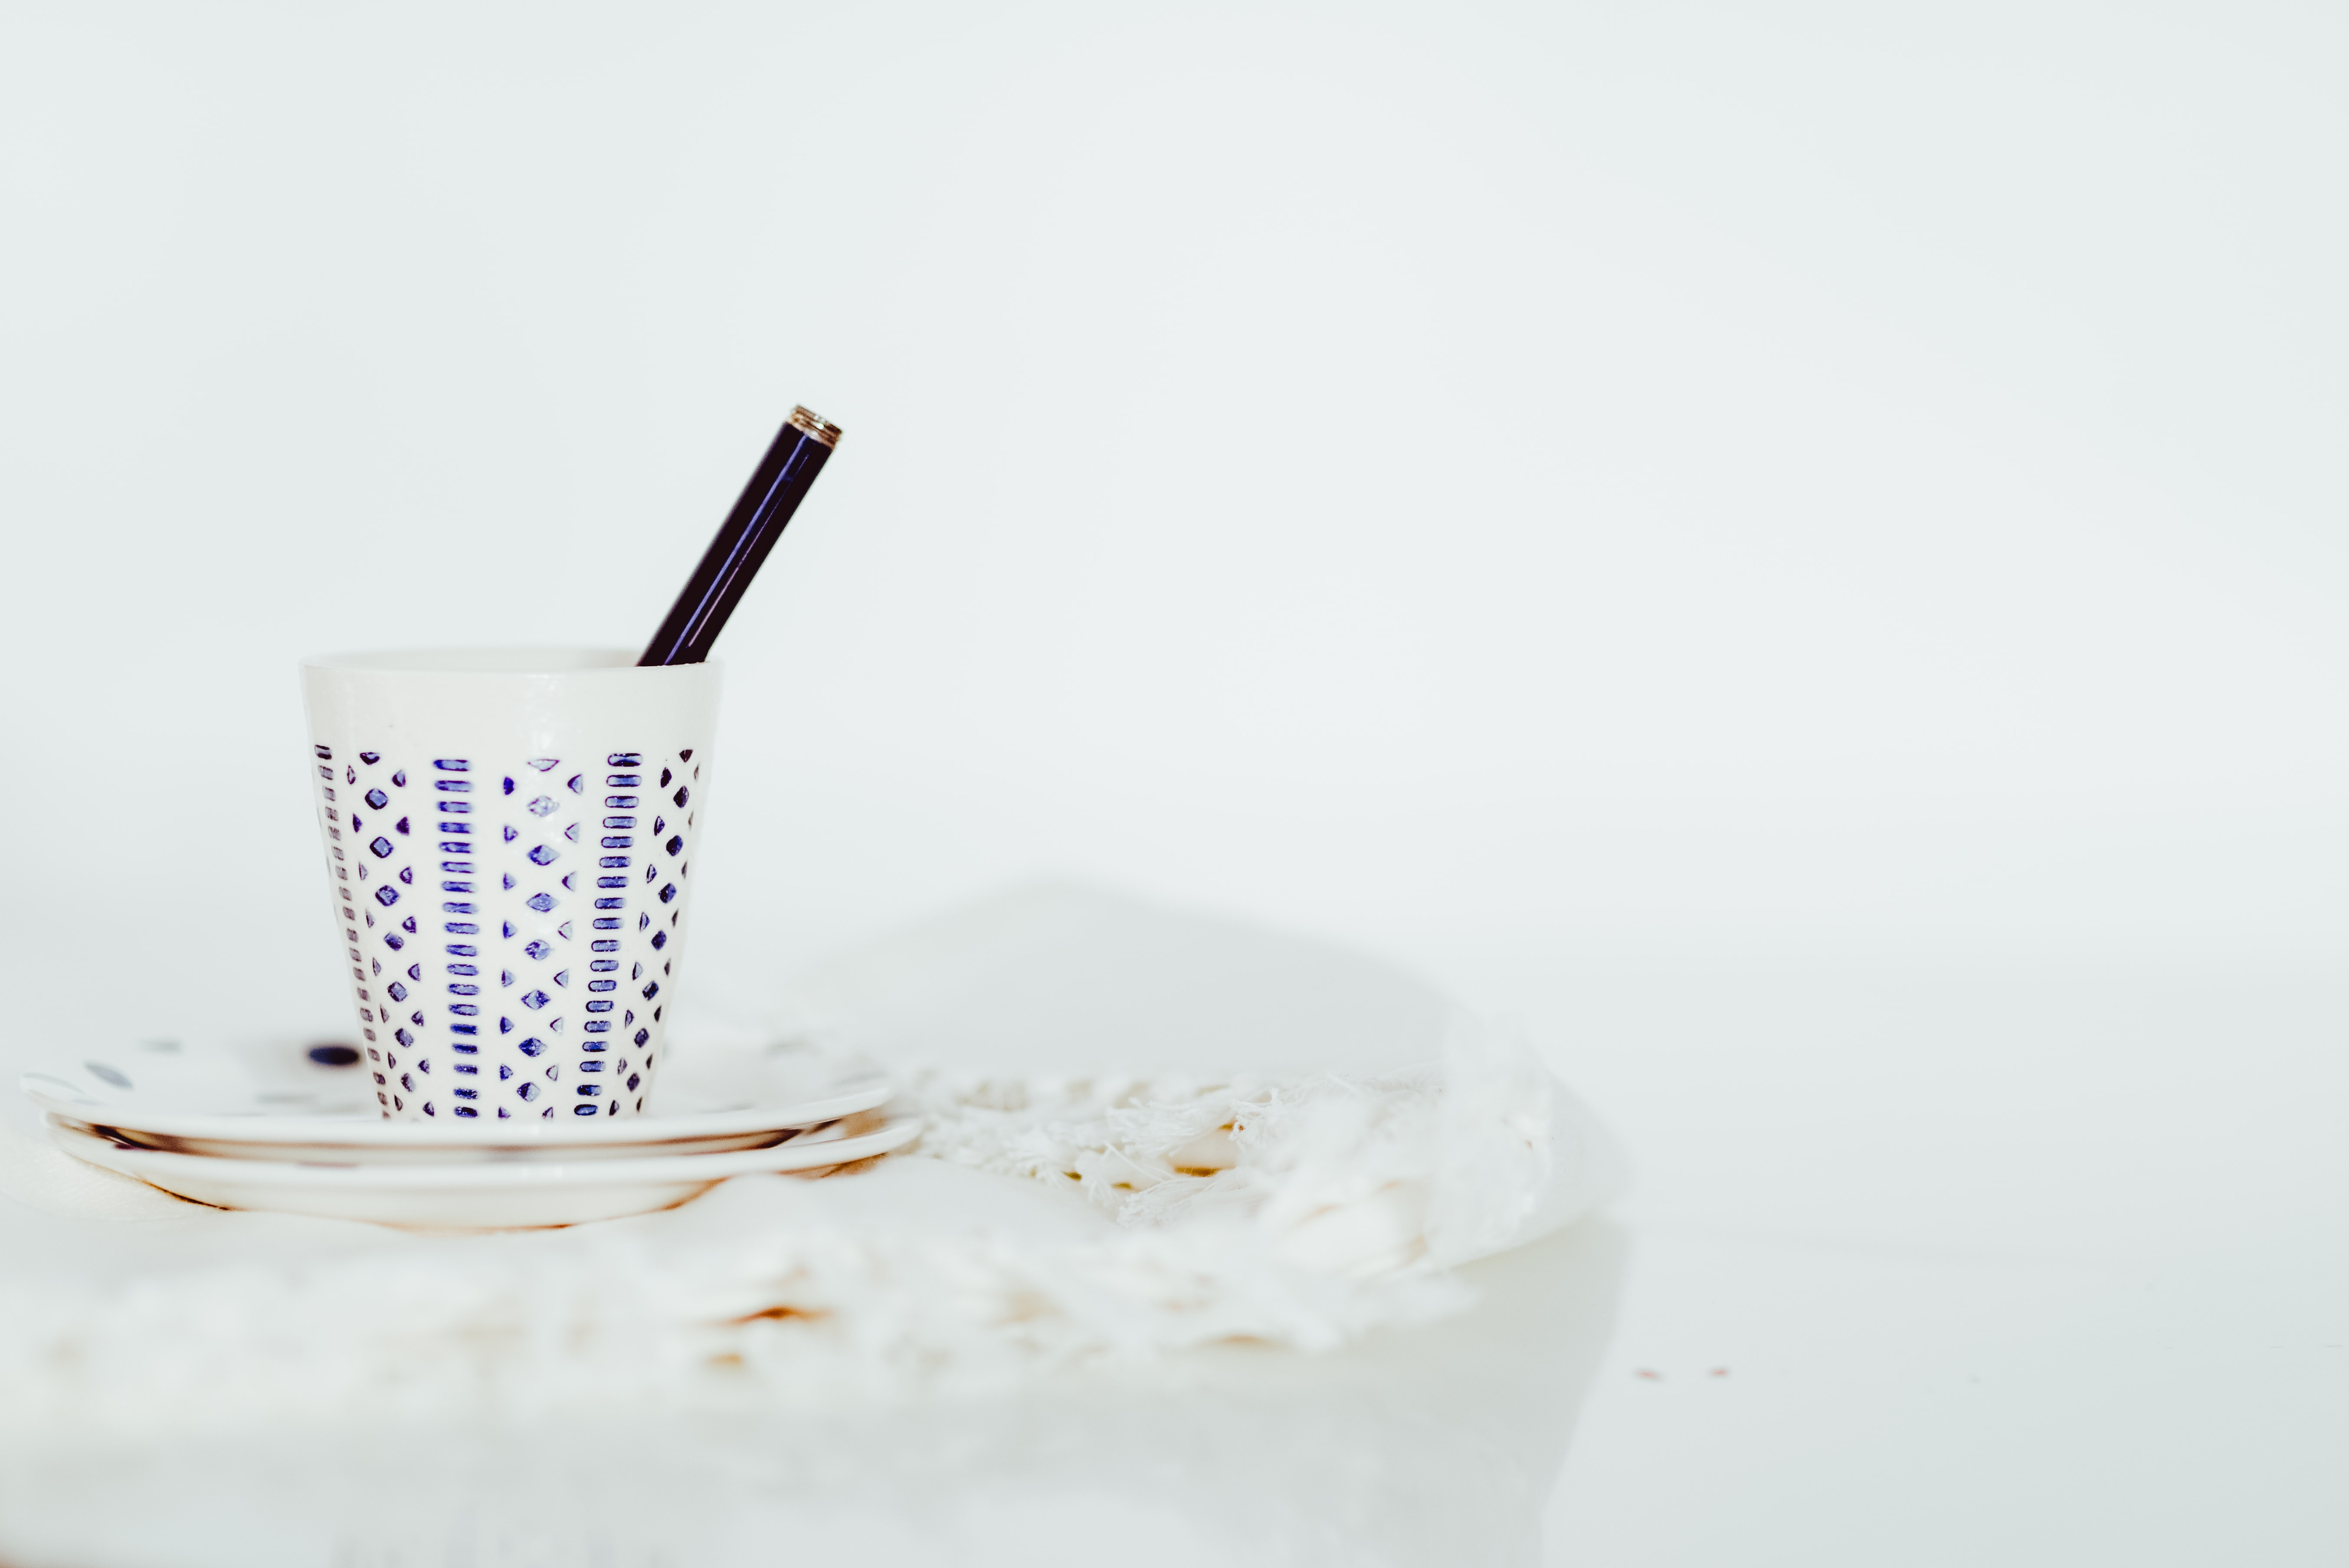 A pen in a white ceramic cup on a saucer against a white background